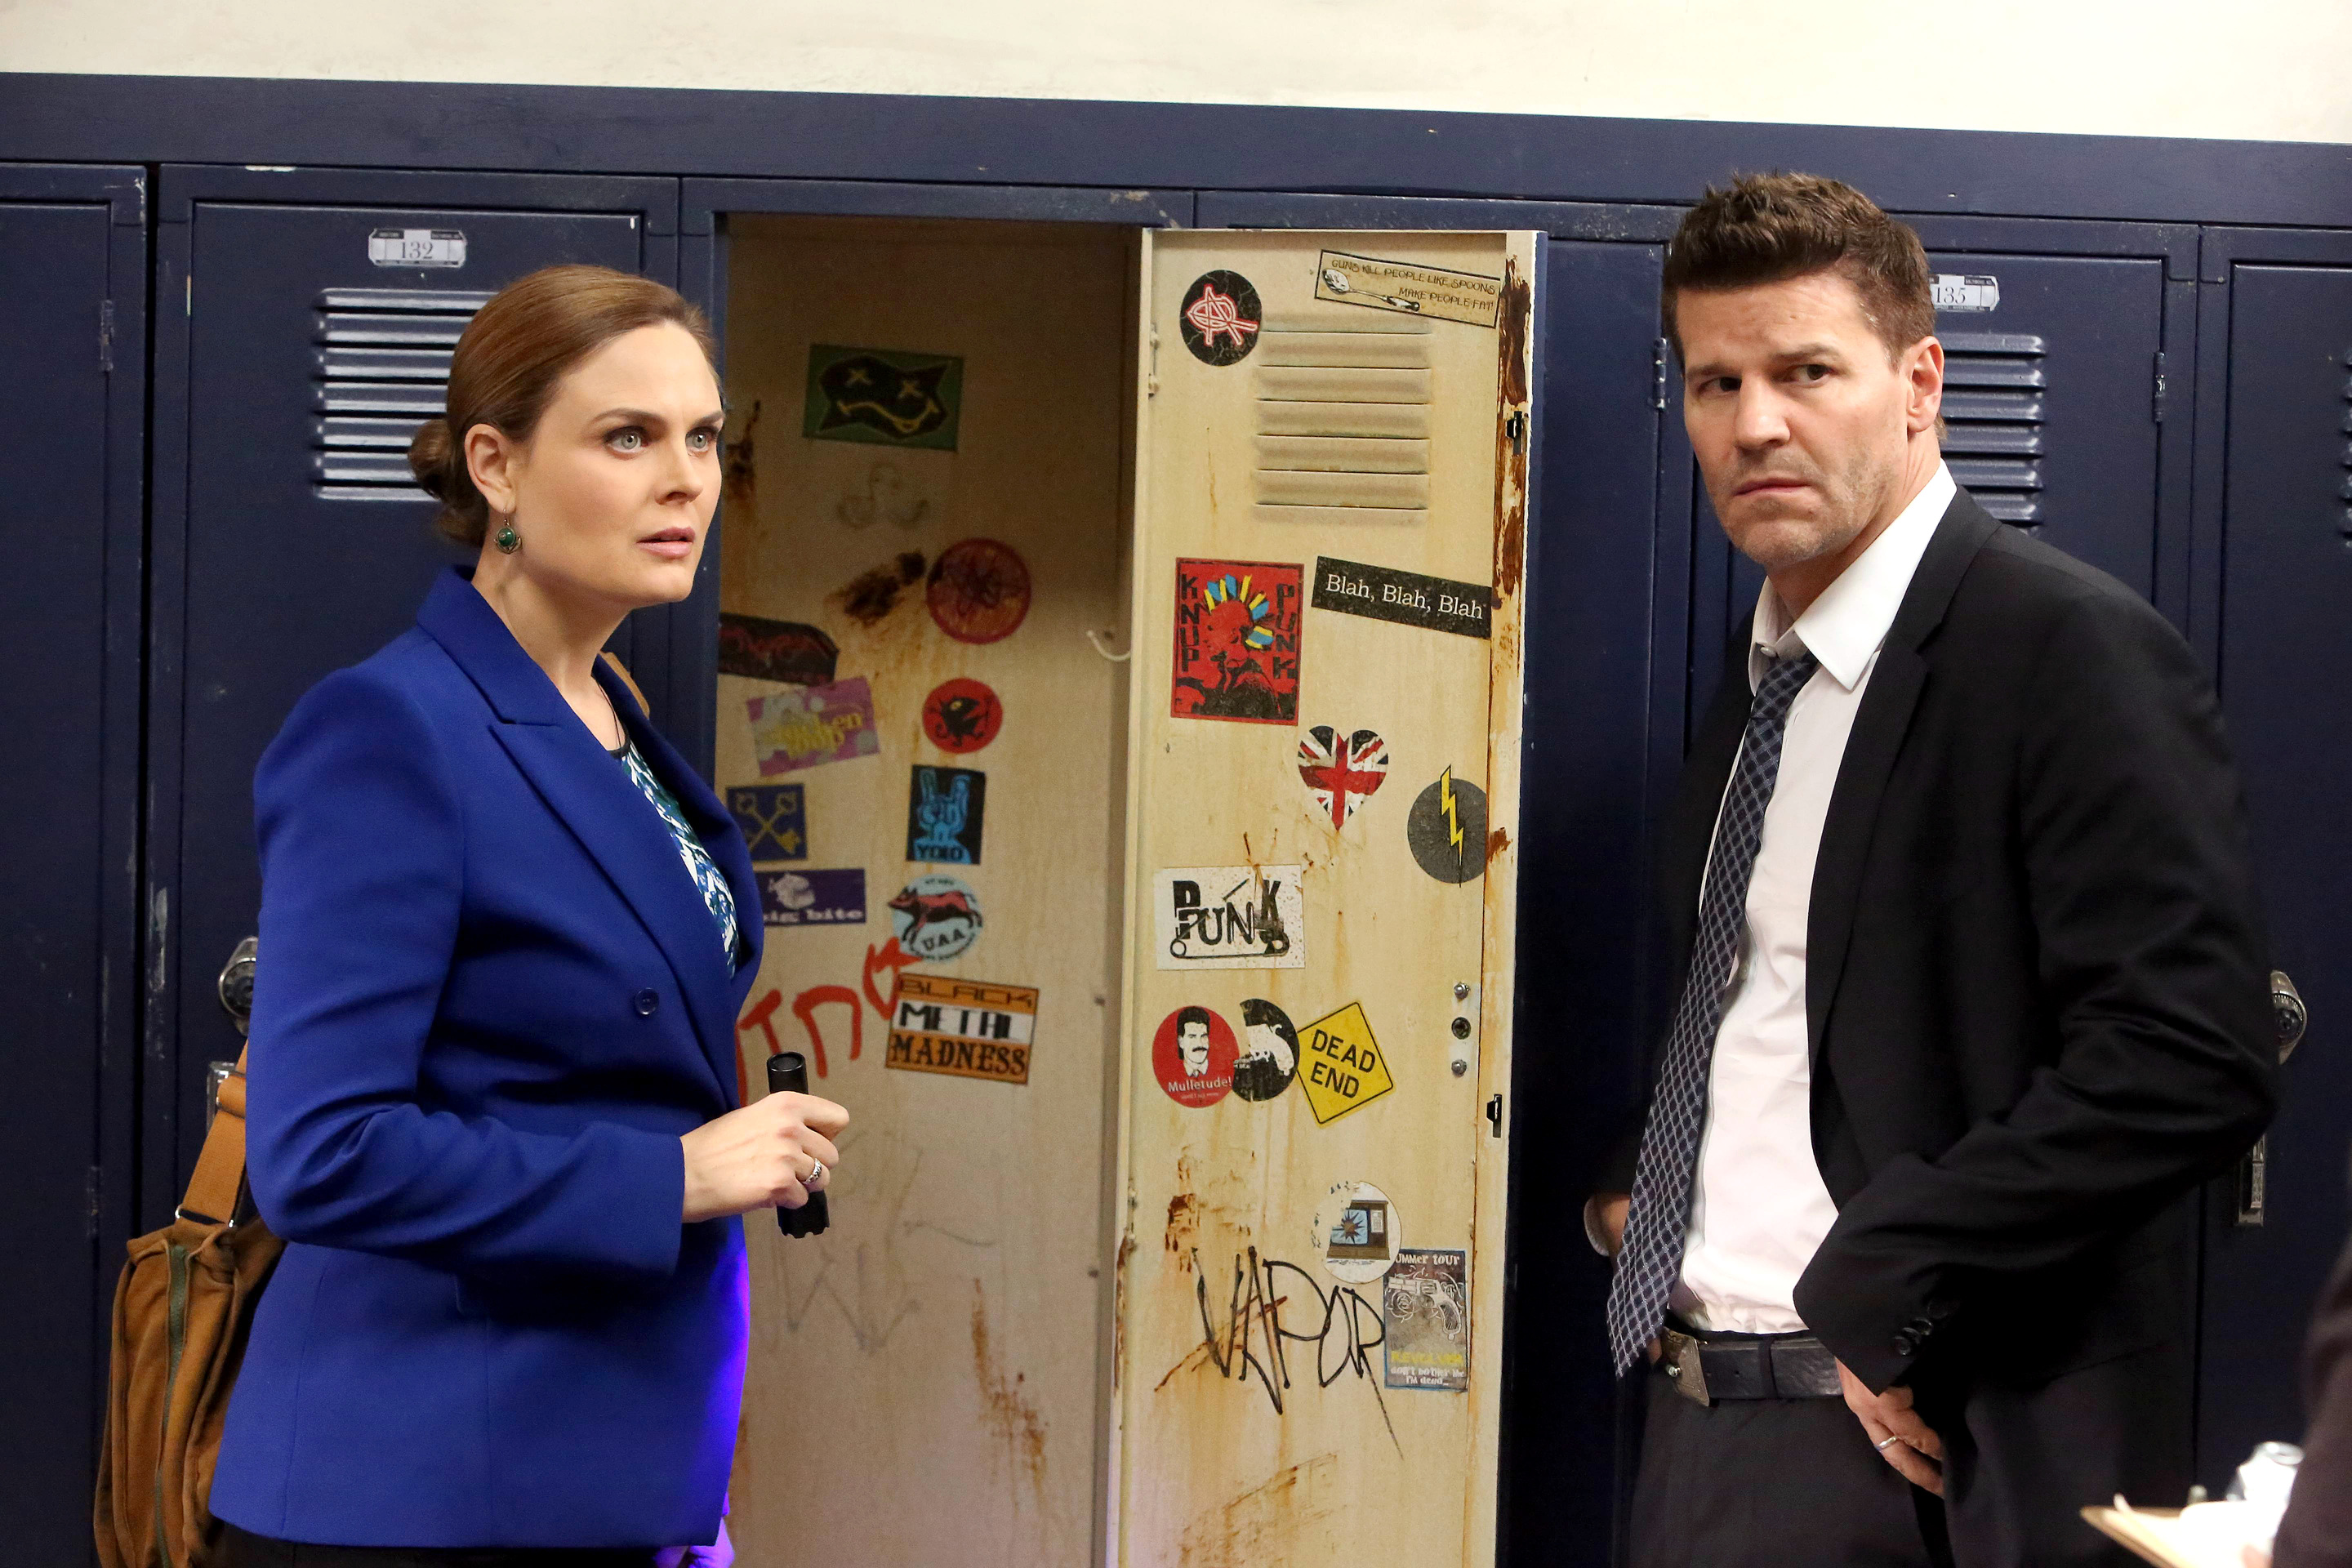 bones season 12 episode 11 watch online free